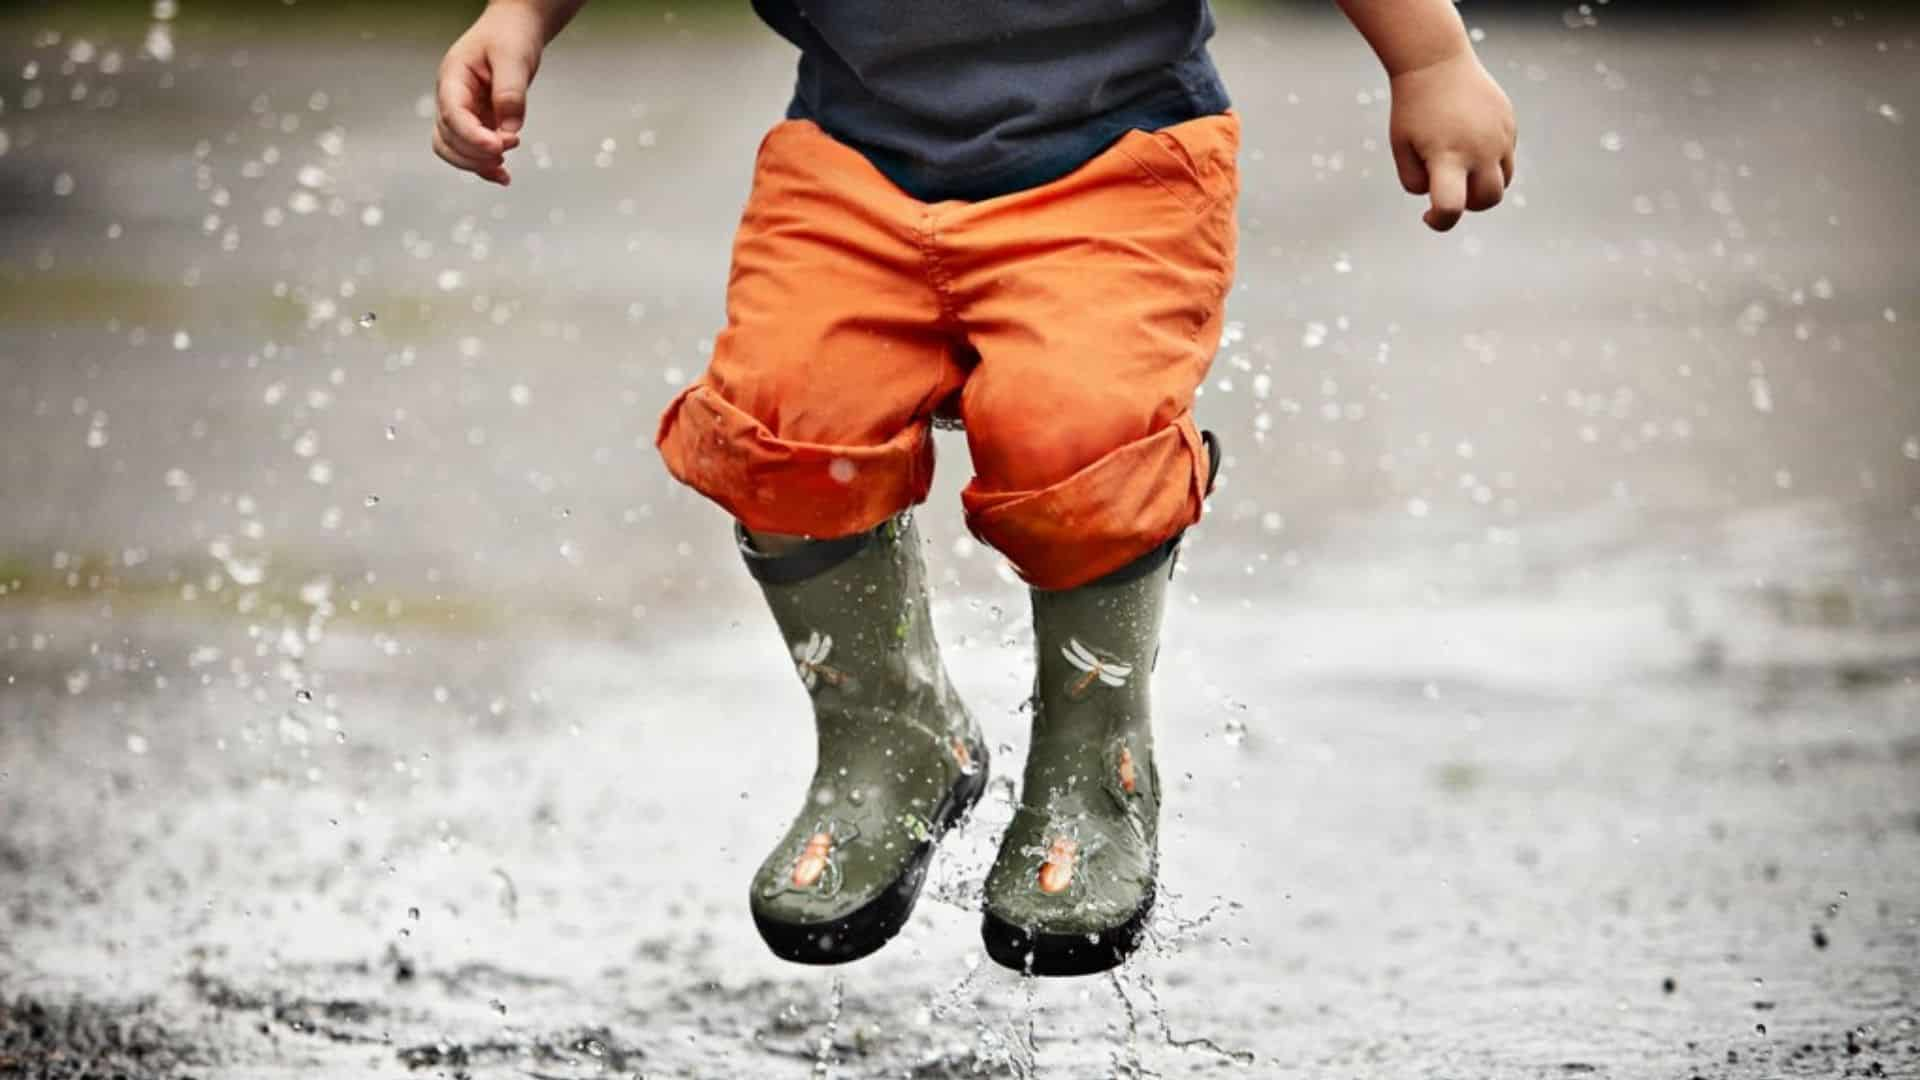 kids are jumping in Puddles